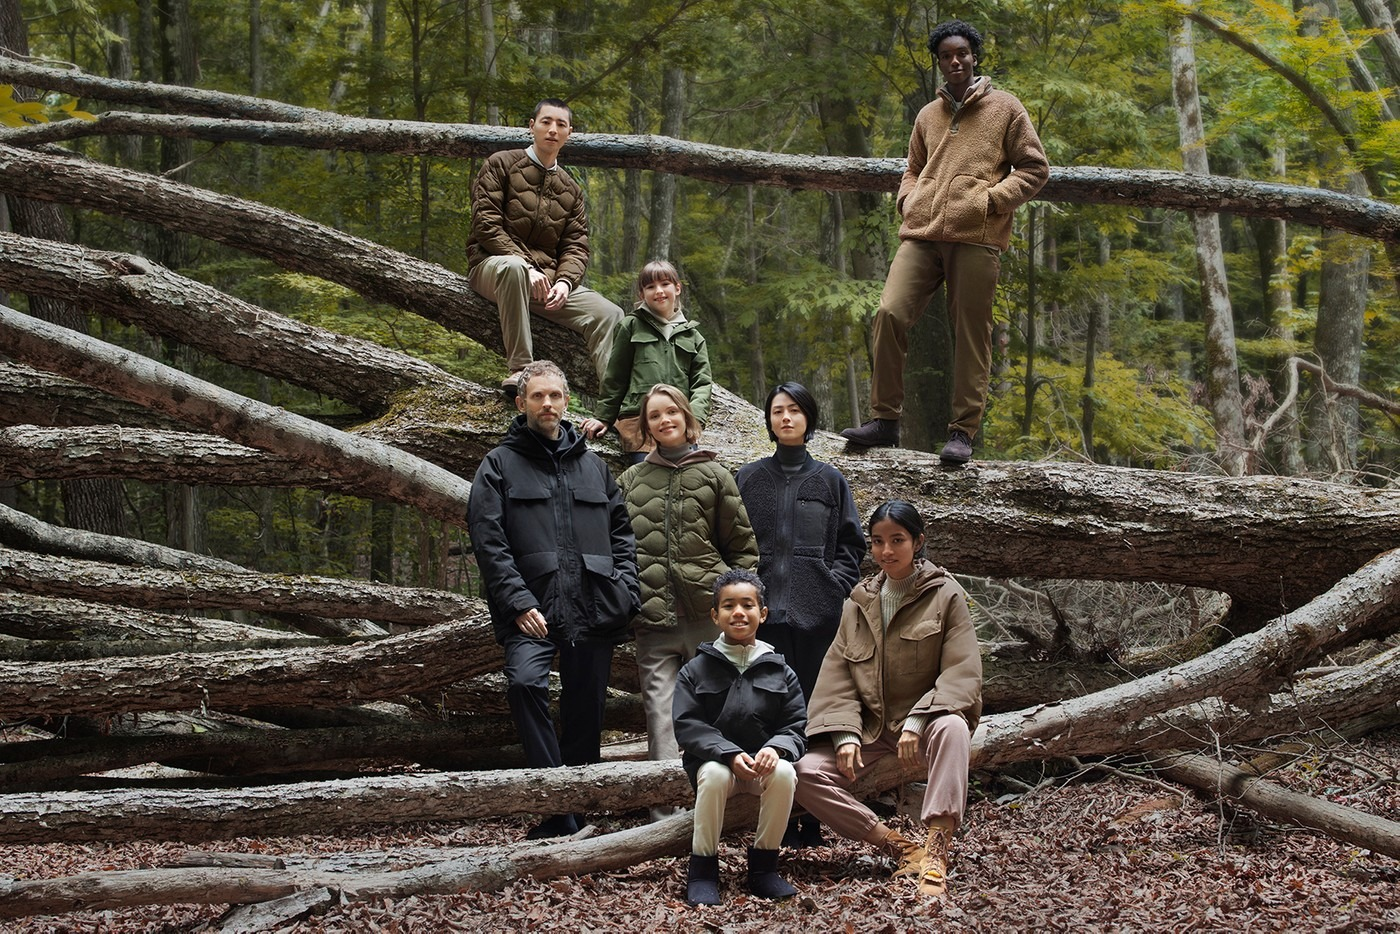 Uniqlo White Mountaineering collab cover